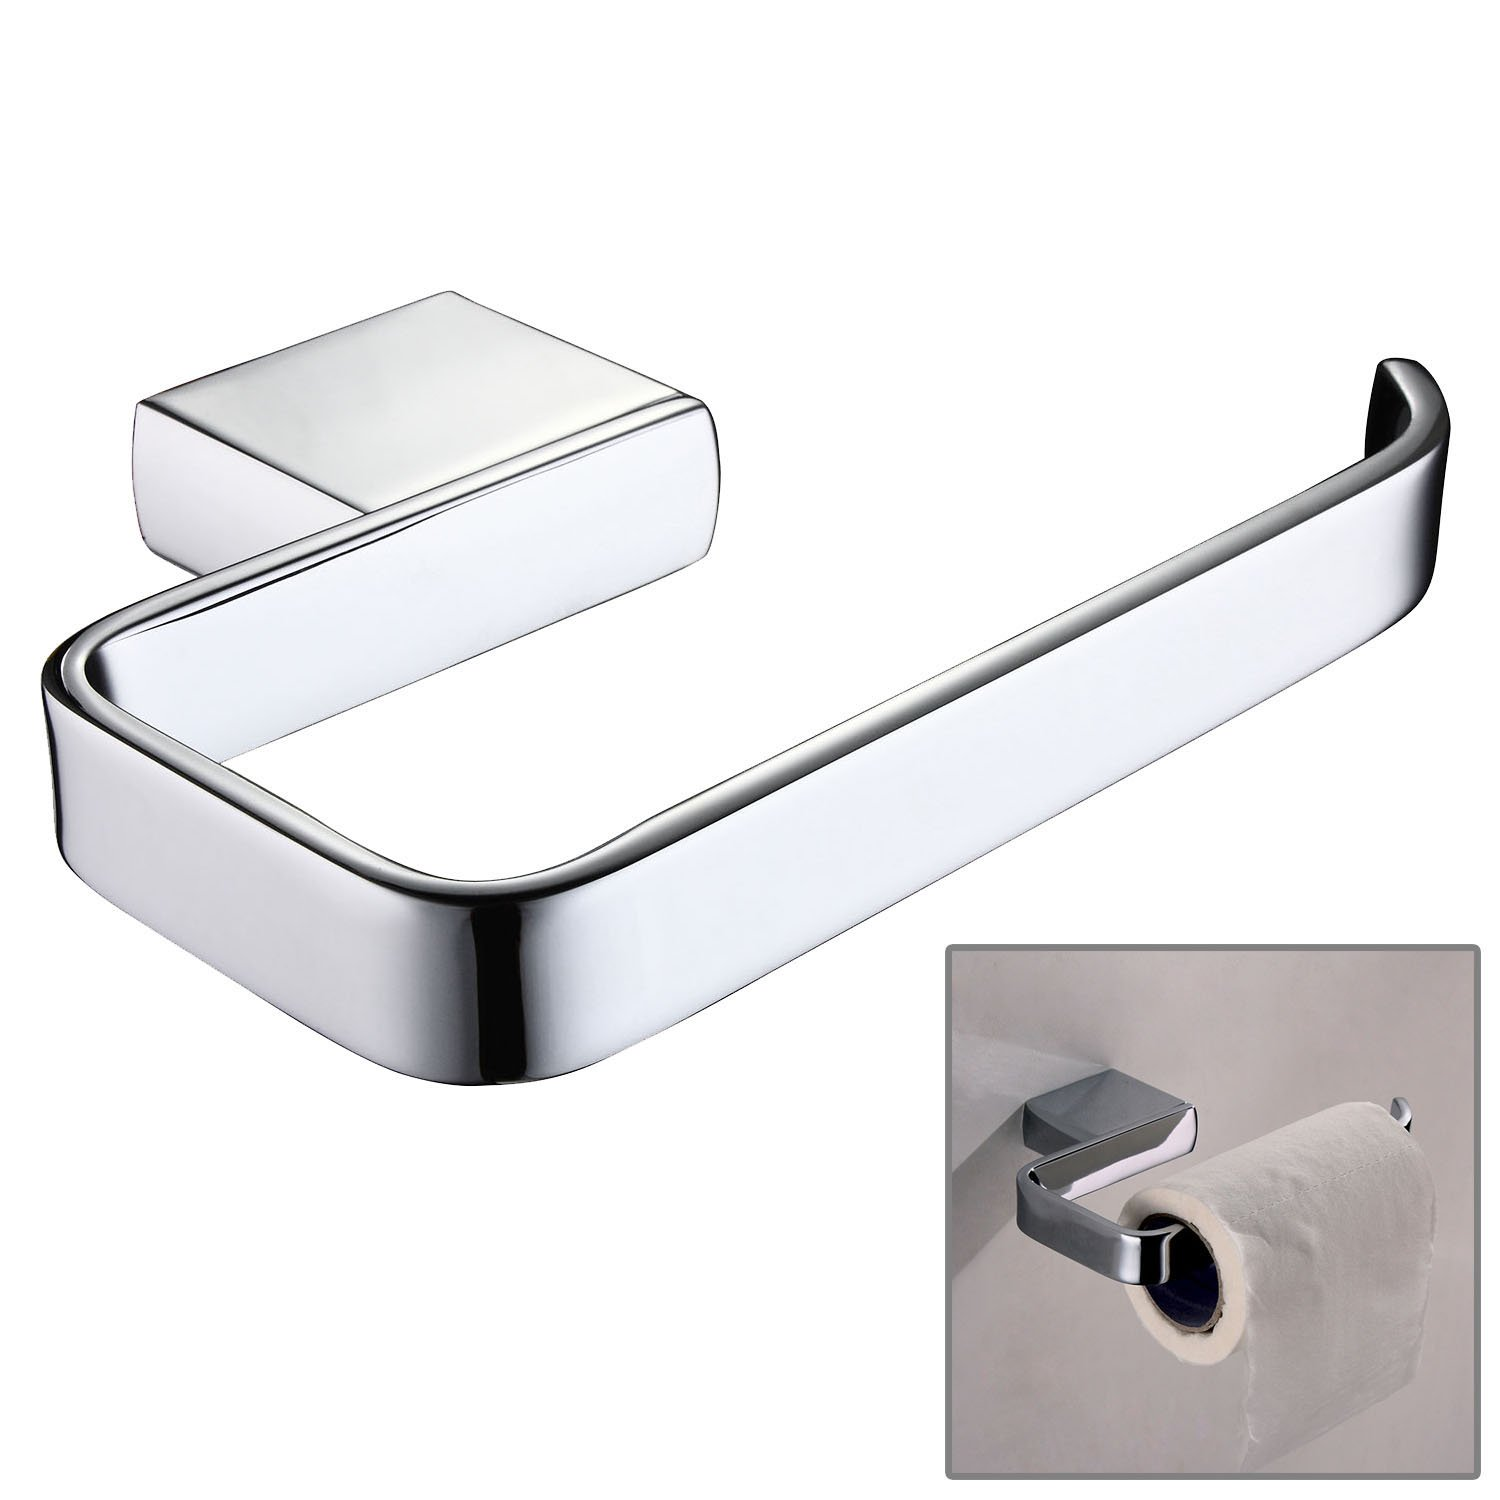 ThinkTop Luxury Brass Toilet Tissue Paper Holder Roll Roller Hanging Wall Mounted Bathroom Accessories, Chrome finished